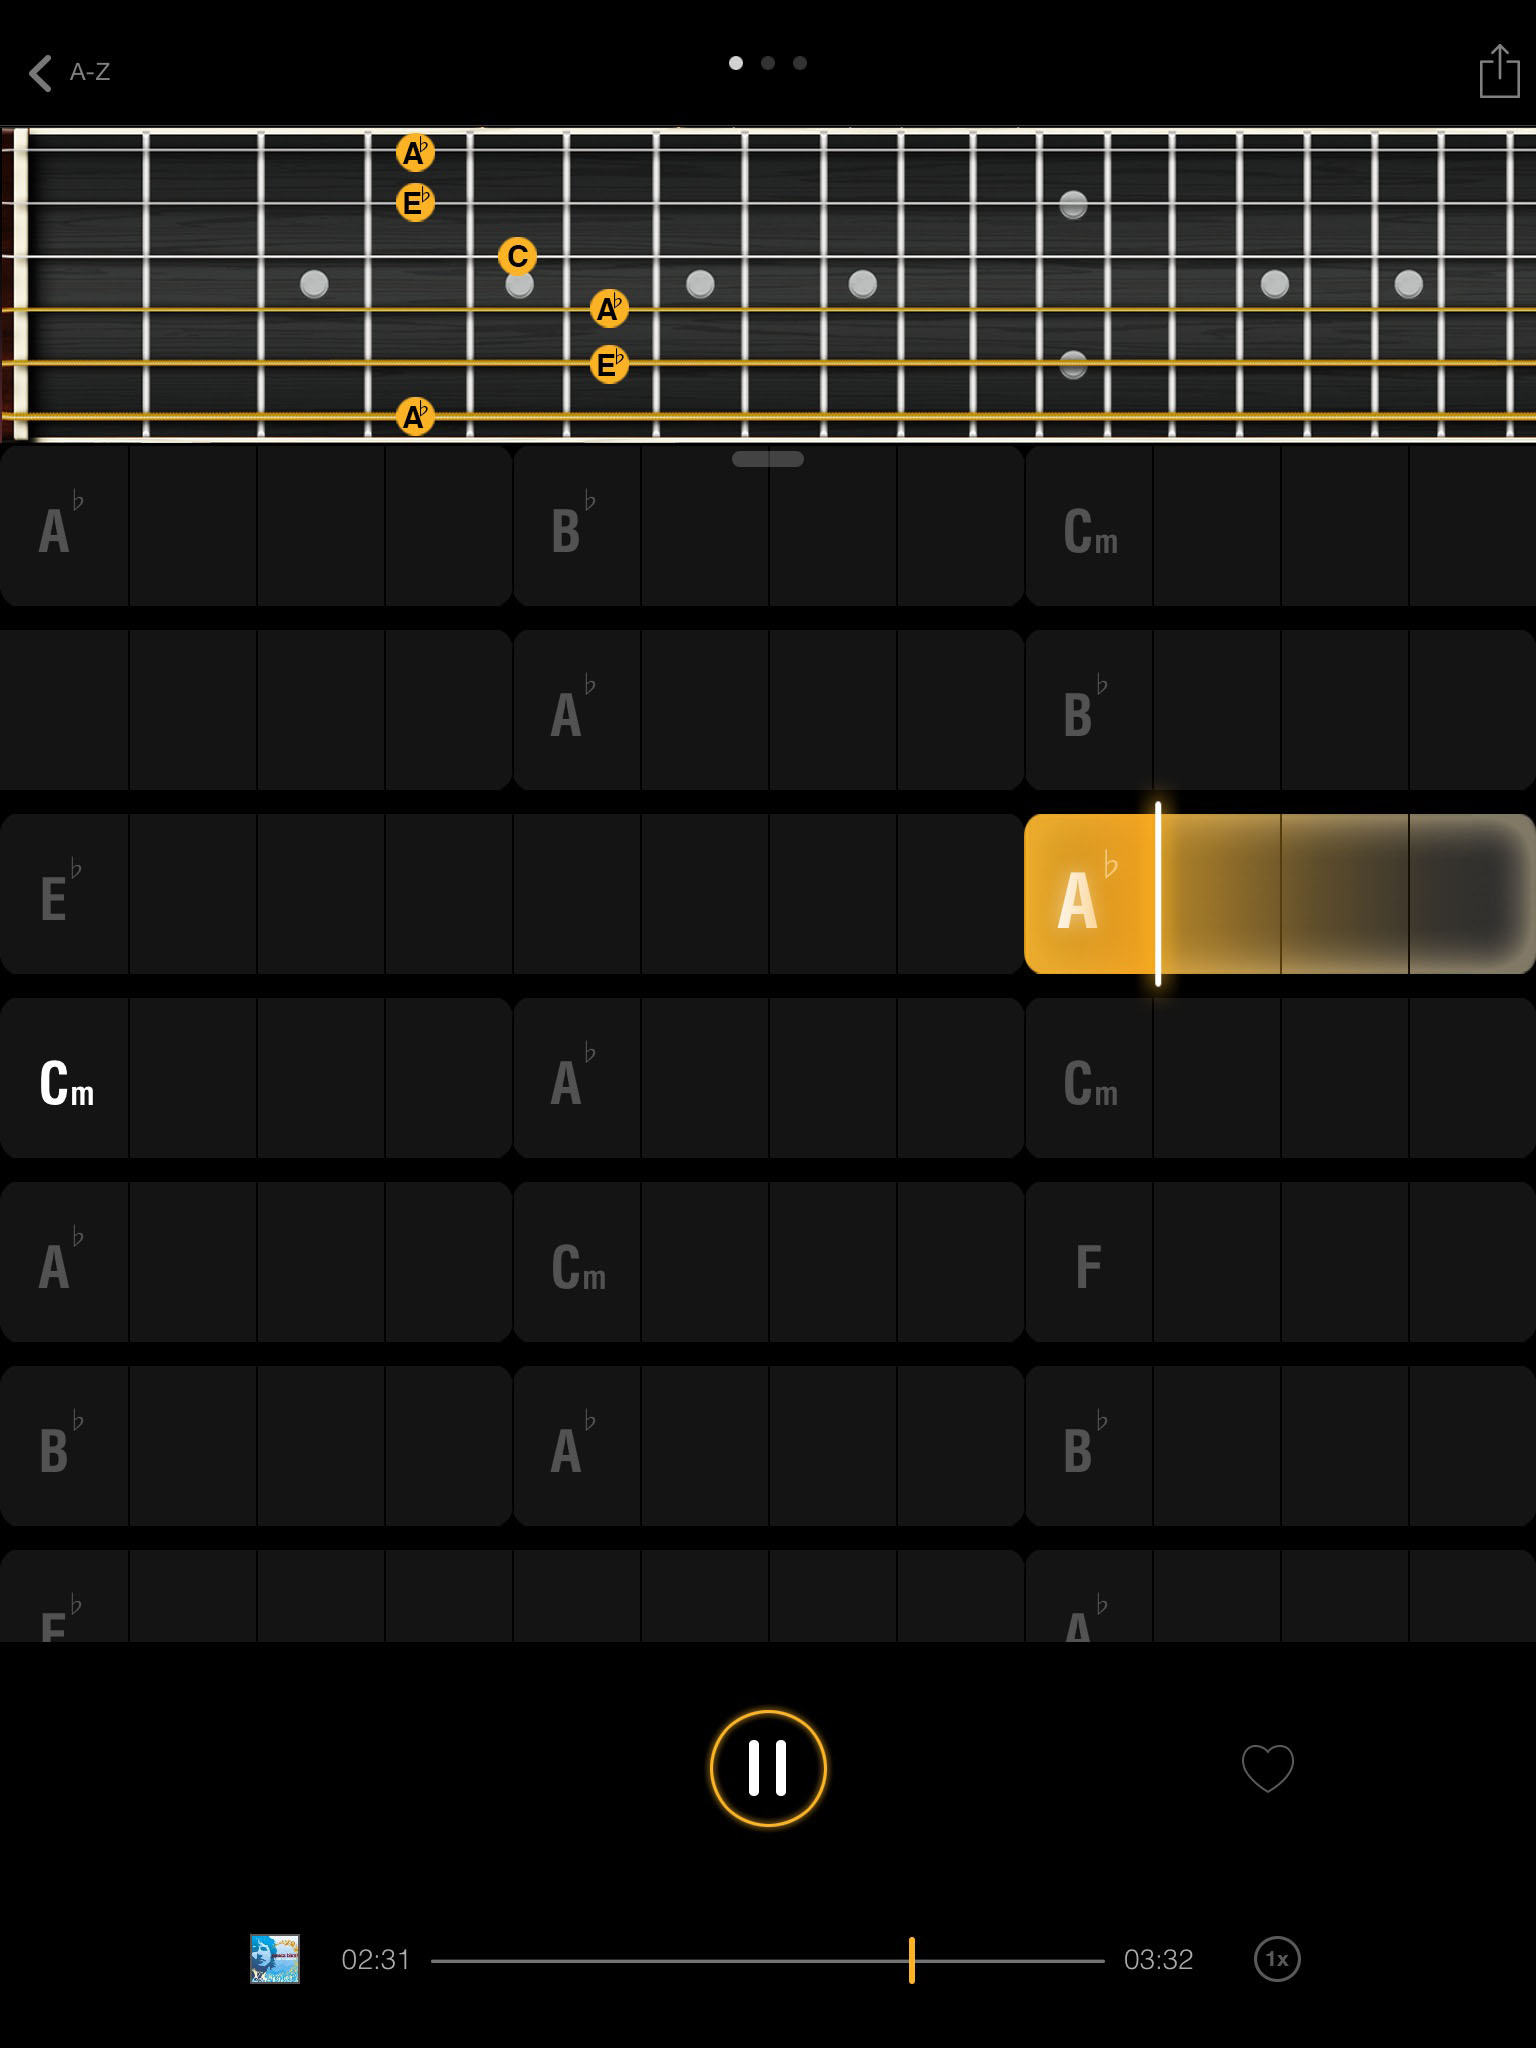 Jamn Player Update Miq Add Features To Their Chord Analysis From